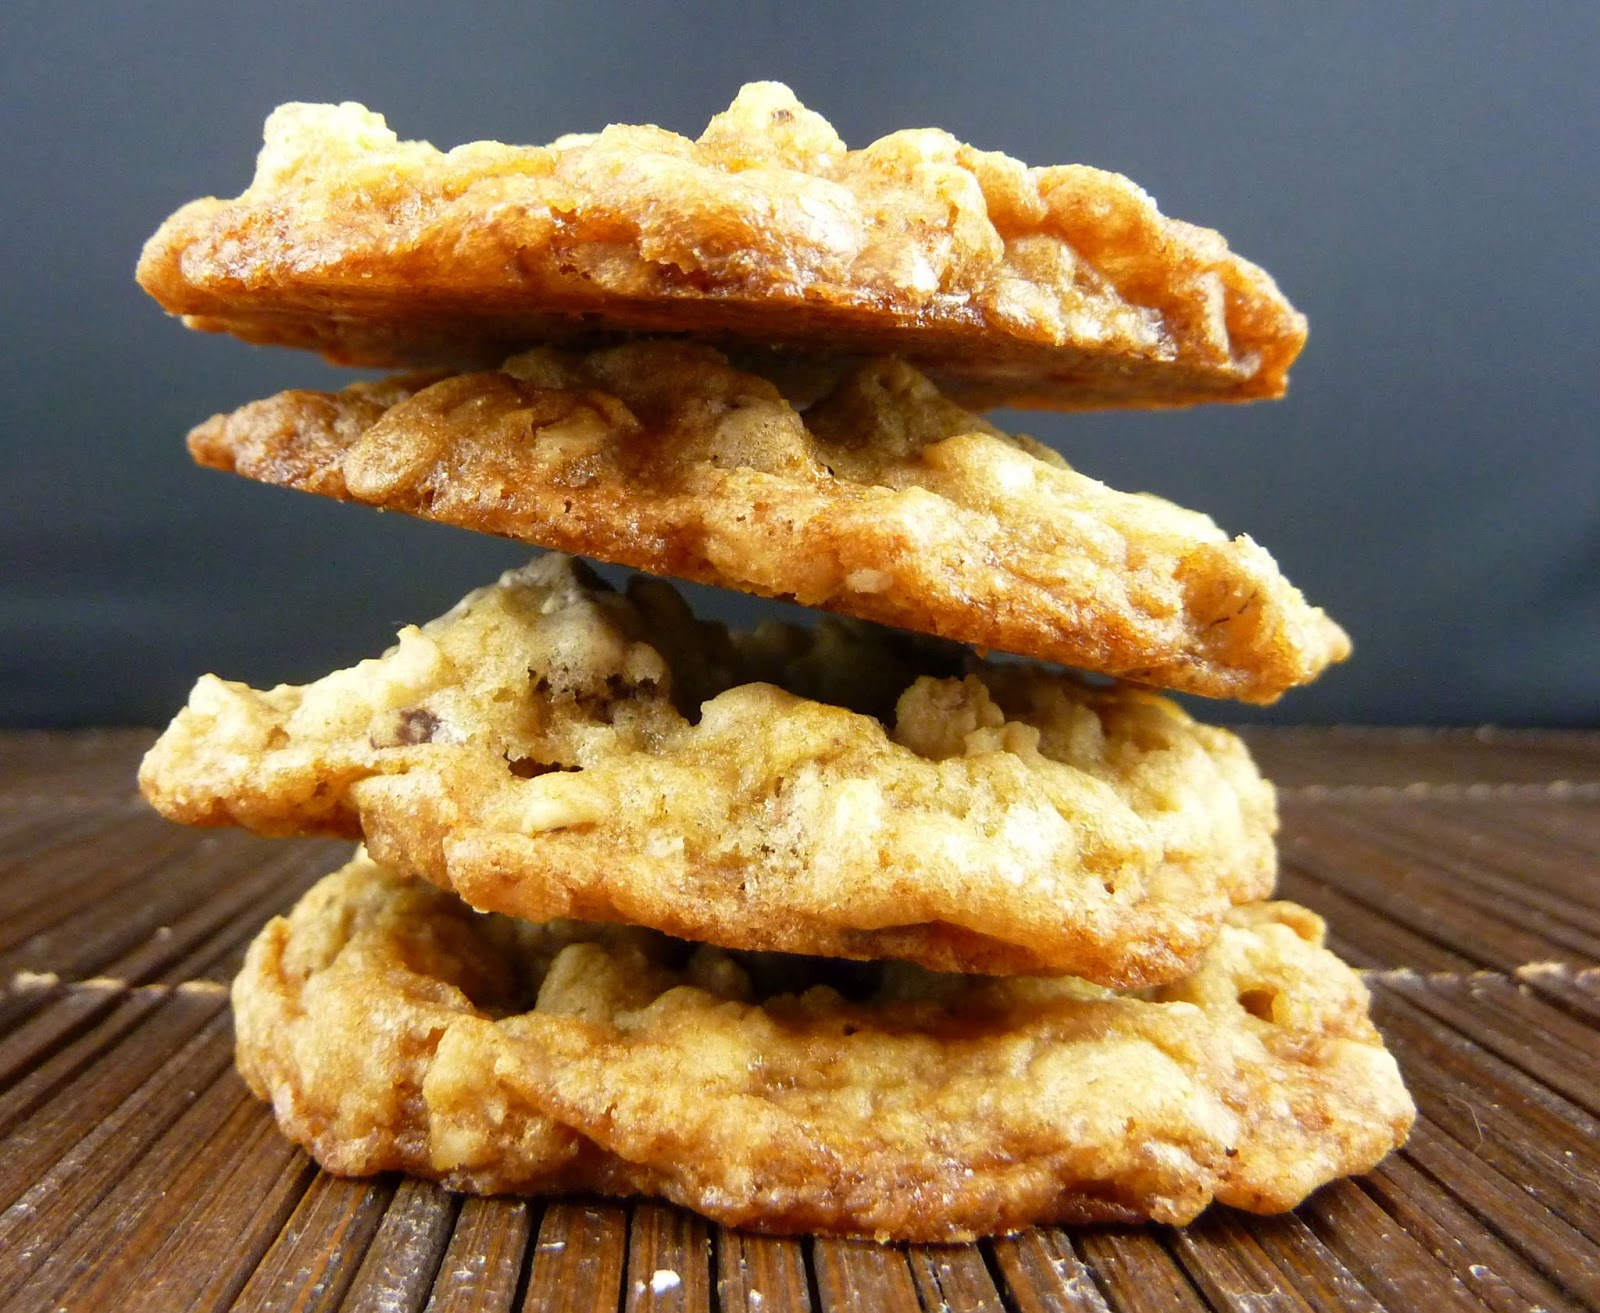 Cookies on Friday: Toffee Oatmeal Chocolate Chunk Cookies